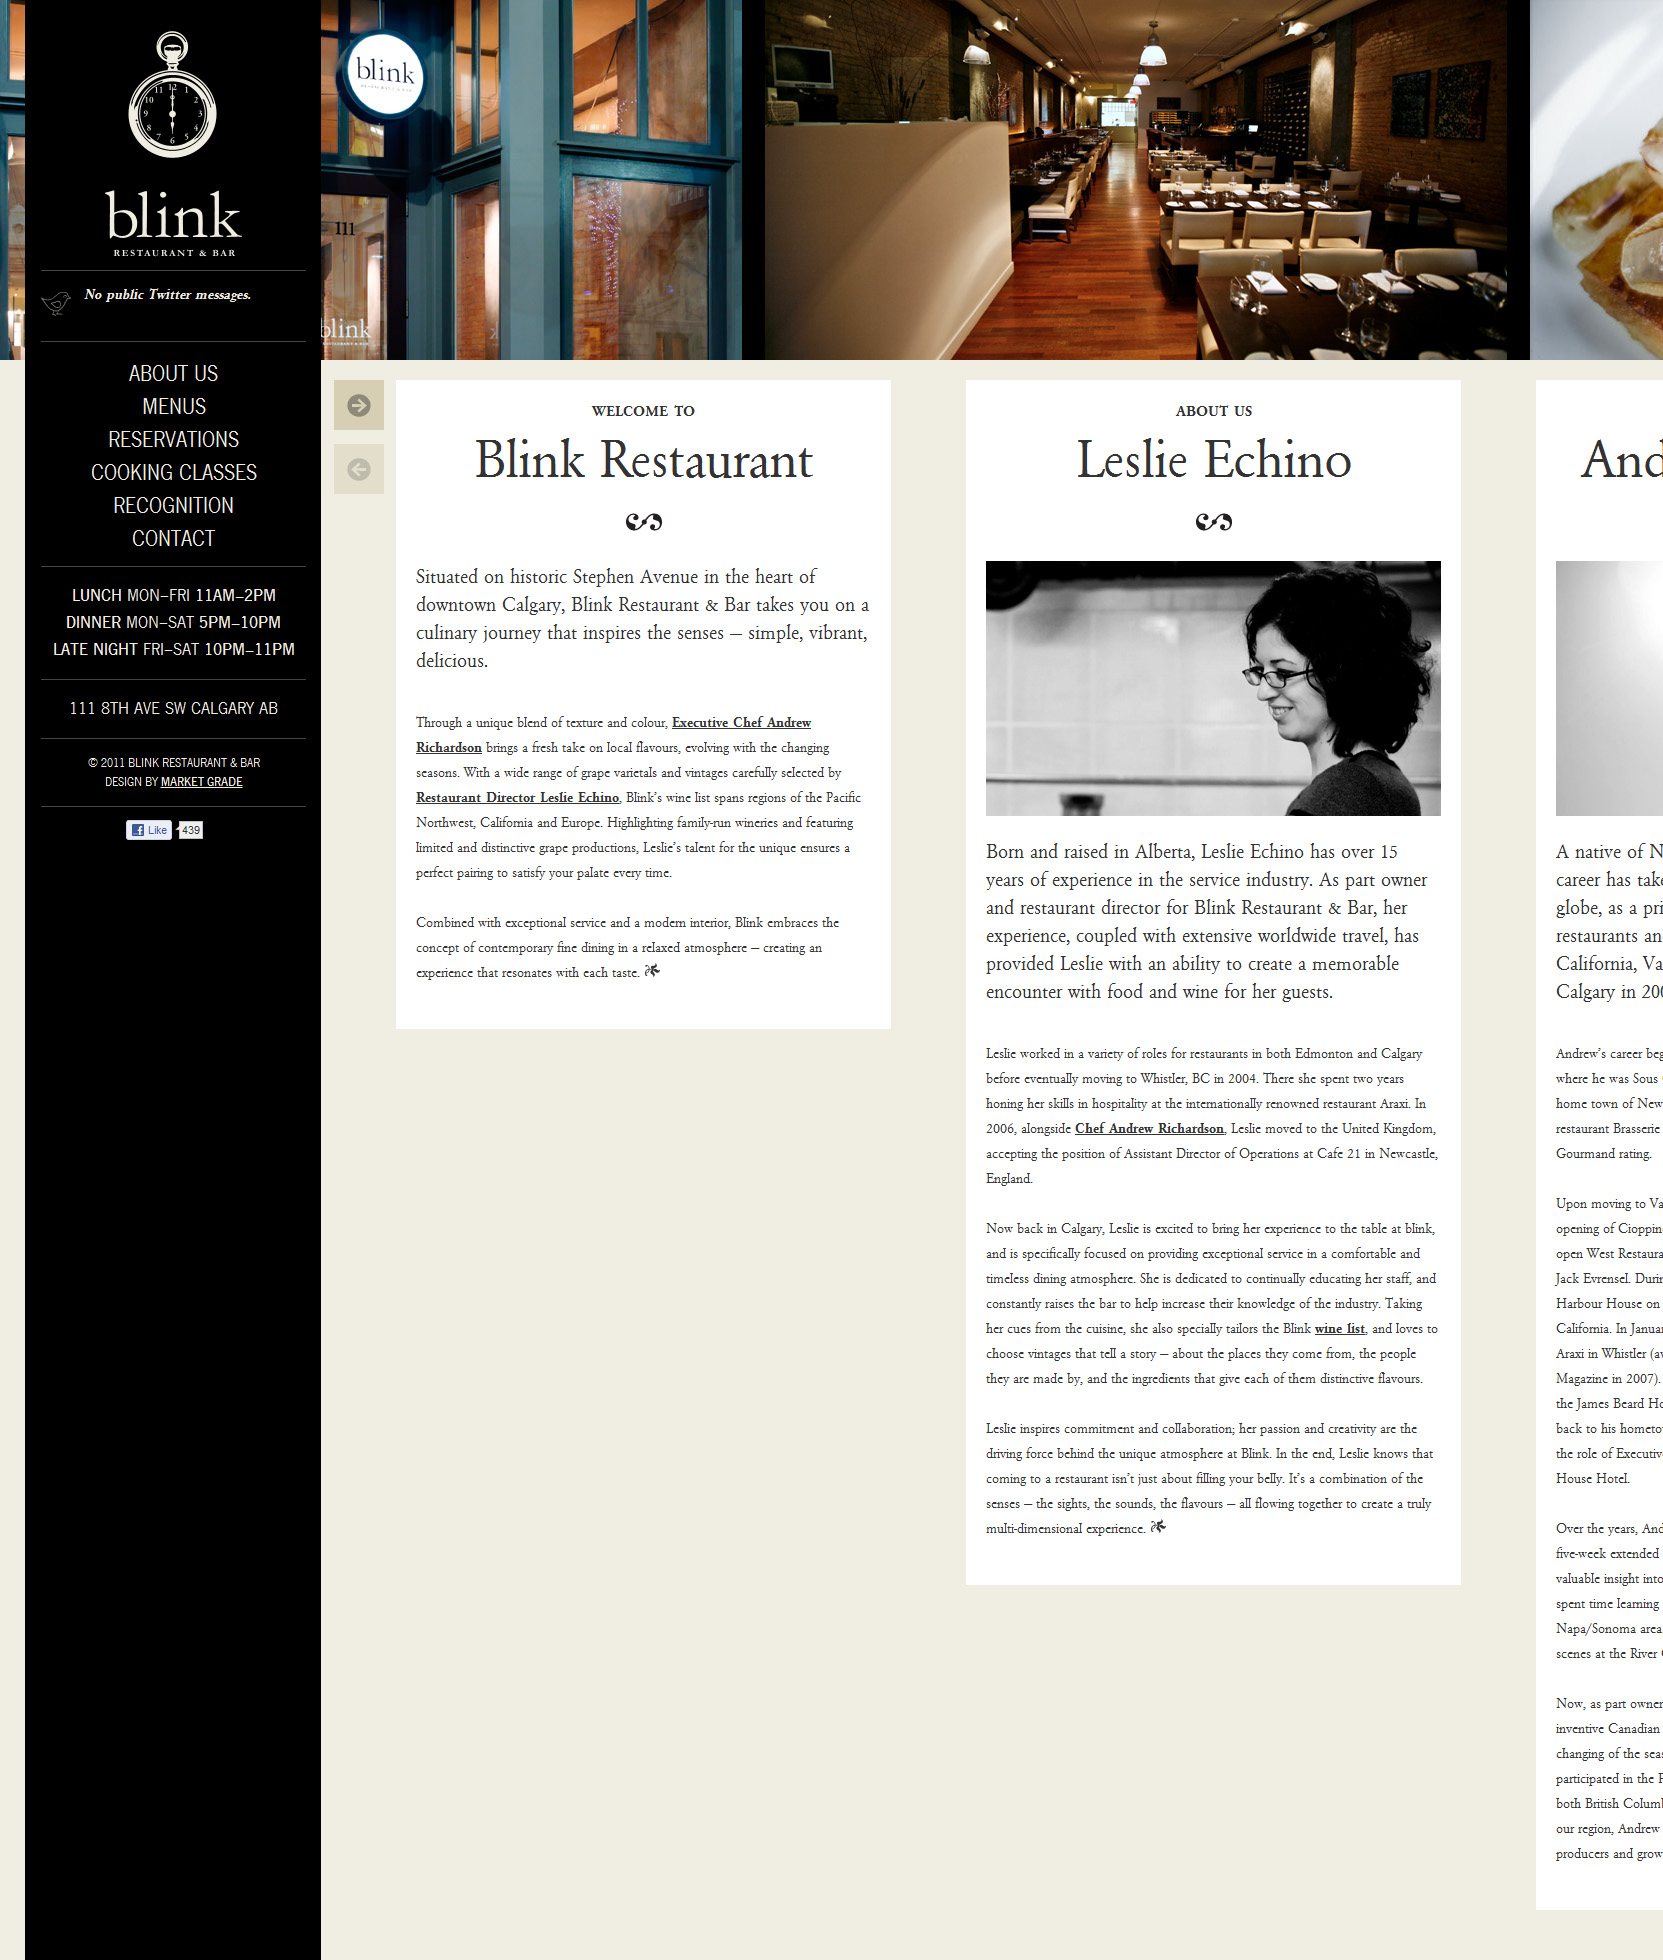 Blink Restaurant Website Screenshot